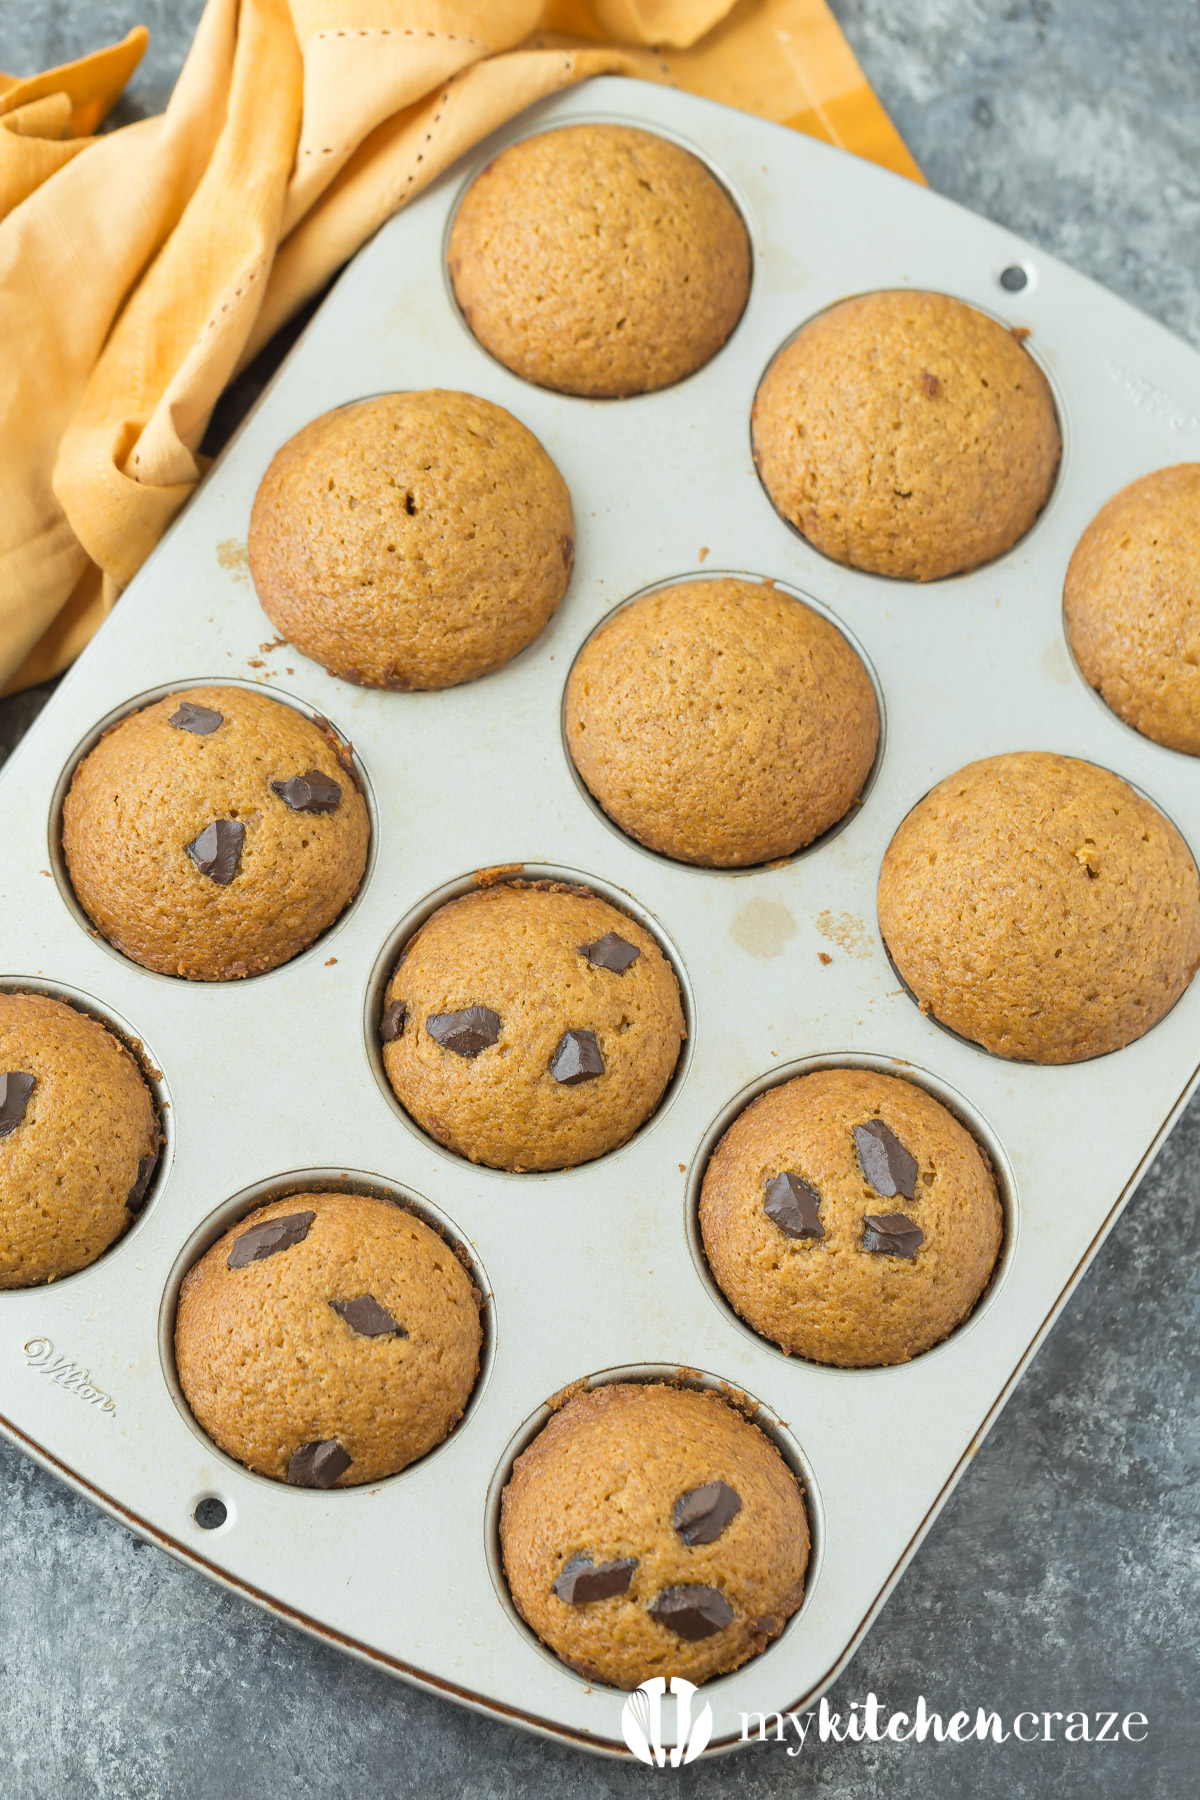 Wake up to a delicious cup of coffee and these moist, flavorful and delicious Pumpkin Muffins. These muffins are perfect for fall! Make sure to grab one because they won't last long!